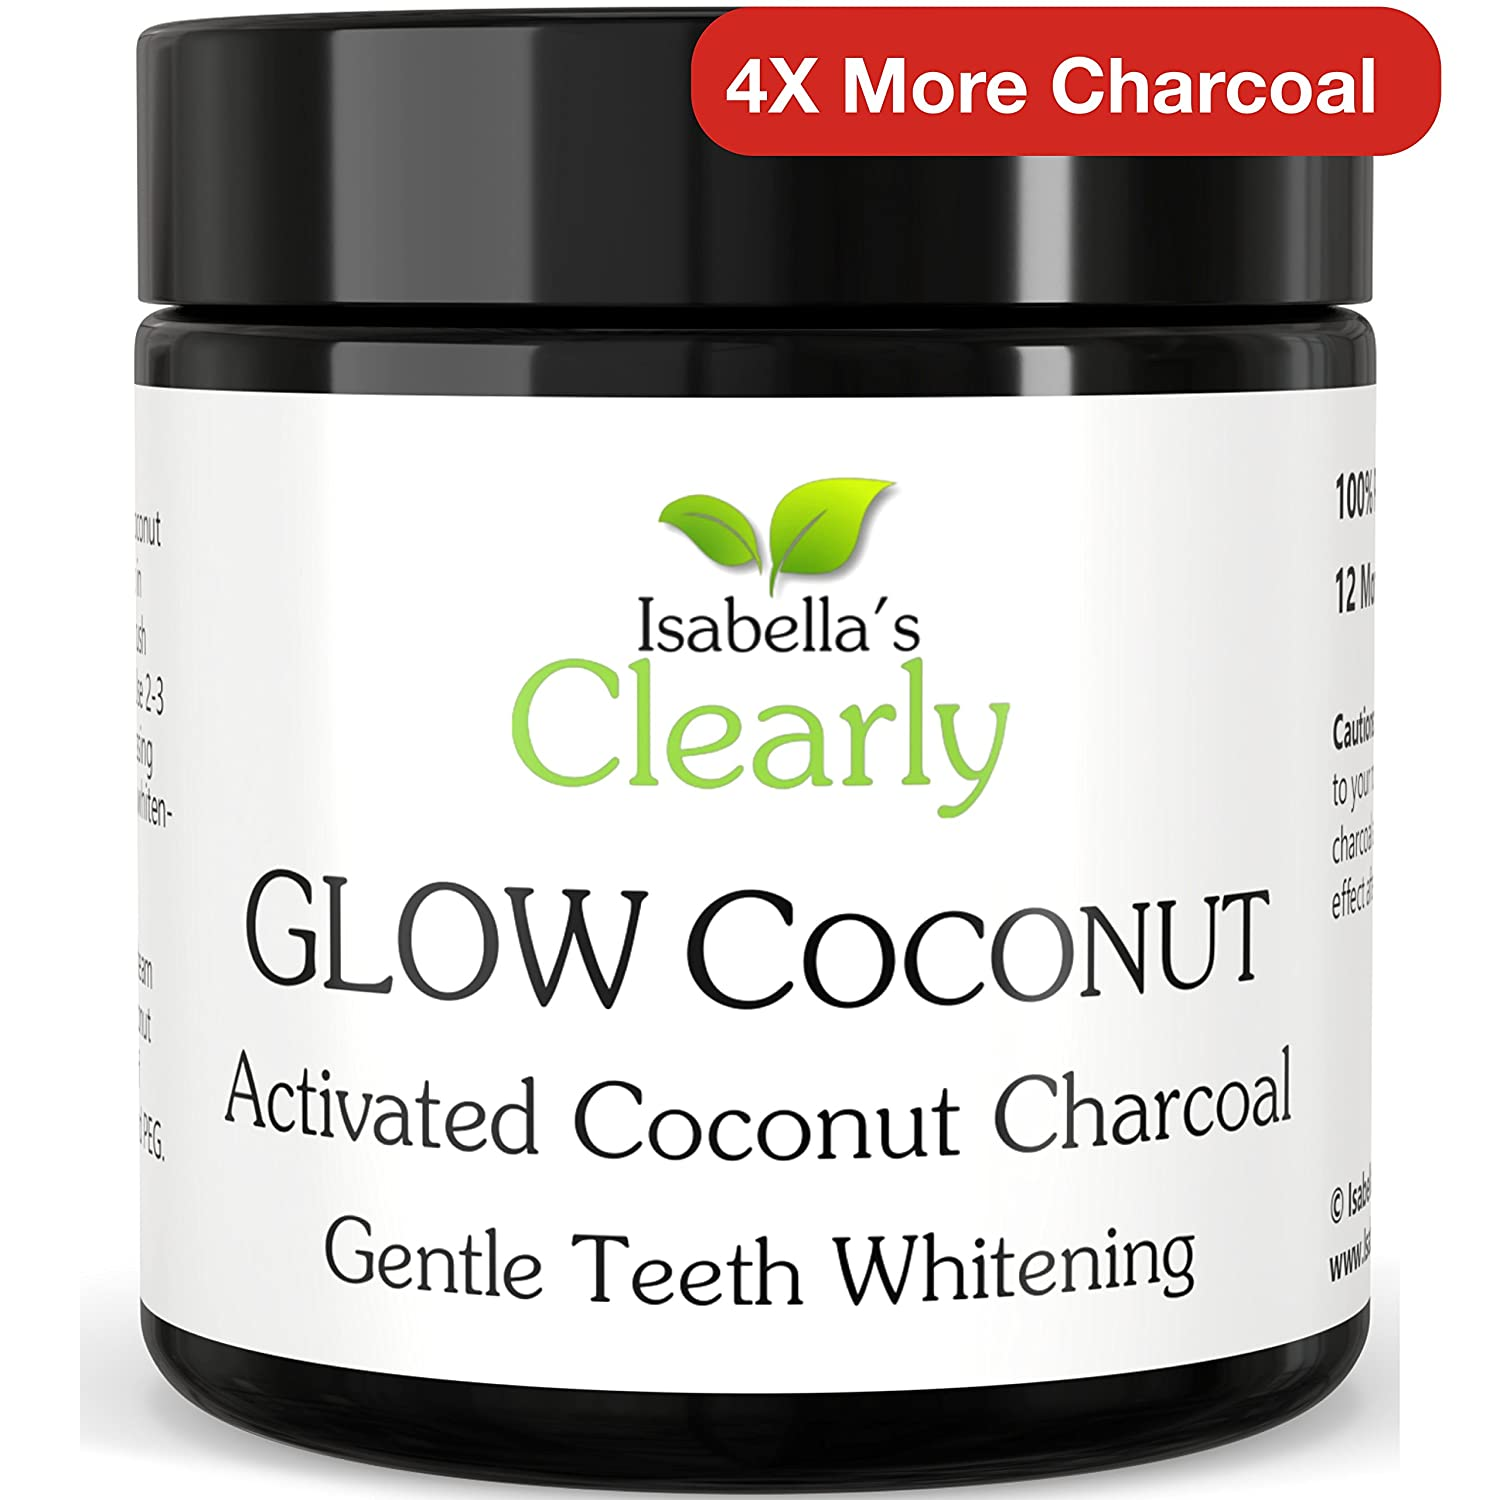 Isabella's Clearly GLOW COCONUT (BULK) - Teeth Whitening Activated Charcoal Powder - 100% Pure Organic Food Grade Non-GMO - Ultra Fine for Sensitive Teeth and Gums - Best Alternative to Whitening Strips, Bleach, Toothpaste. Removes Stains & Plaque - Ca